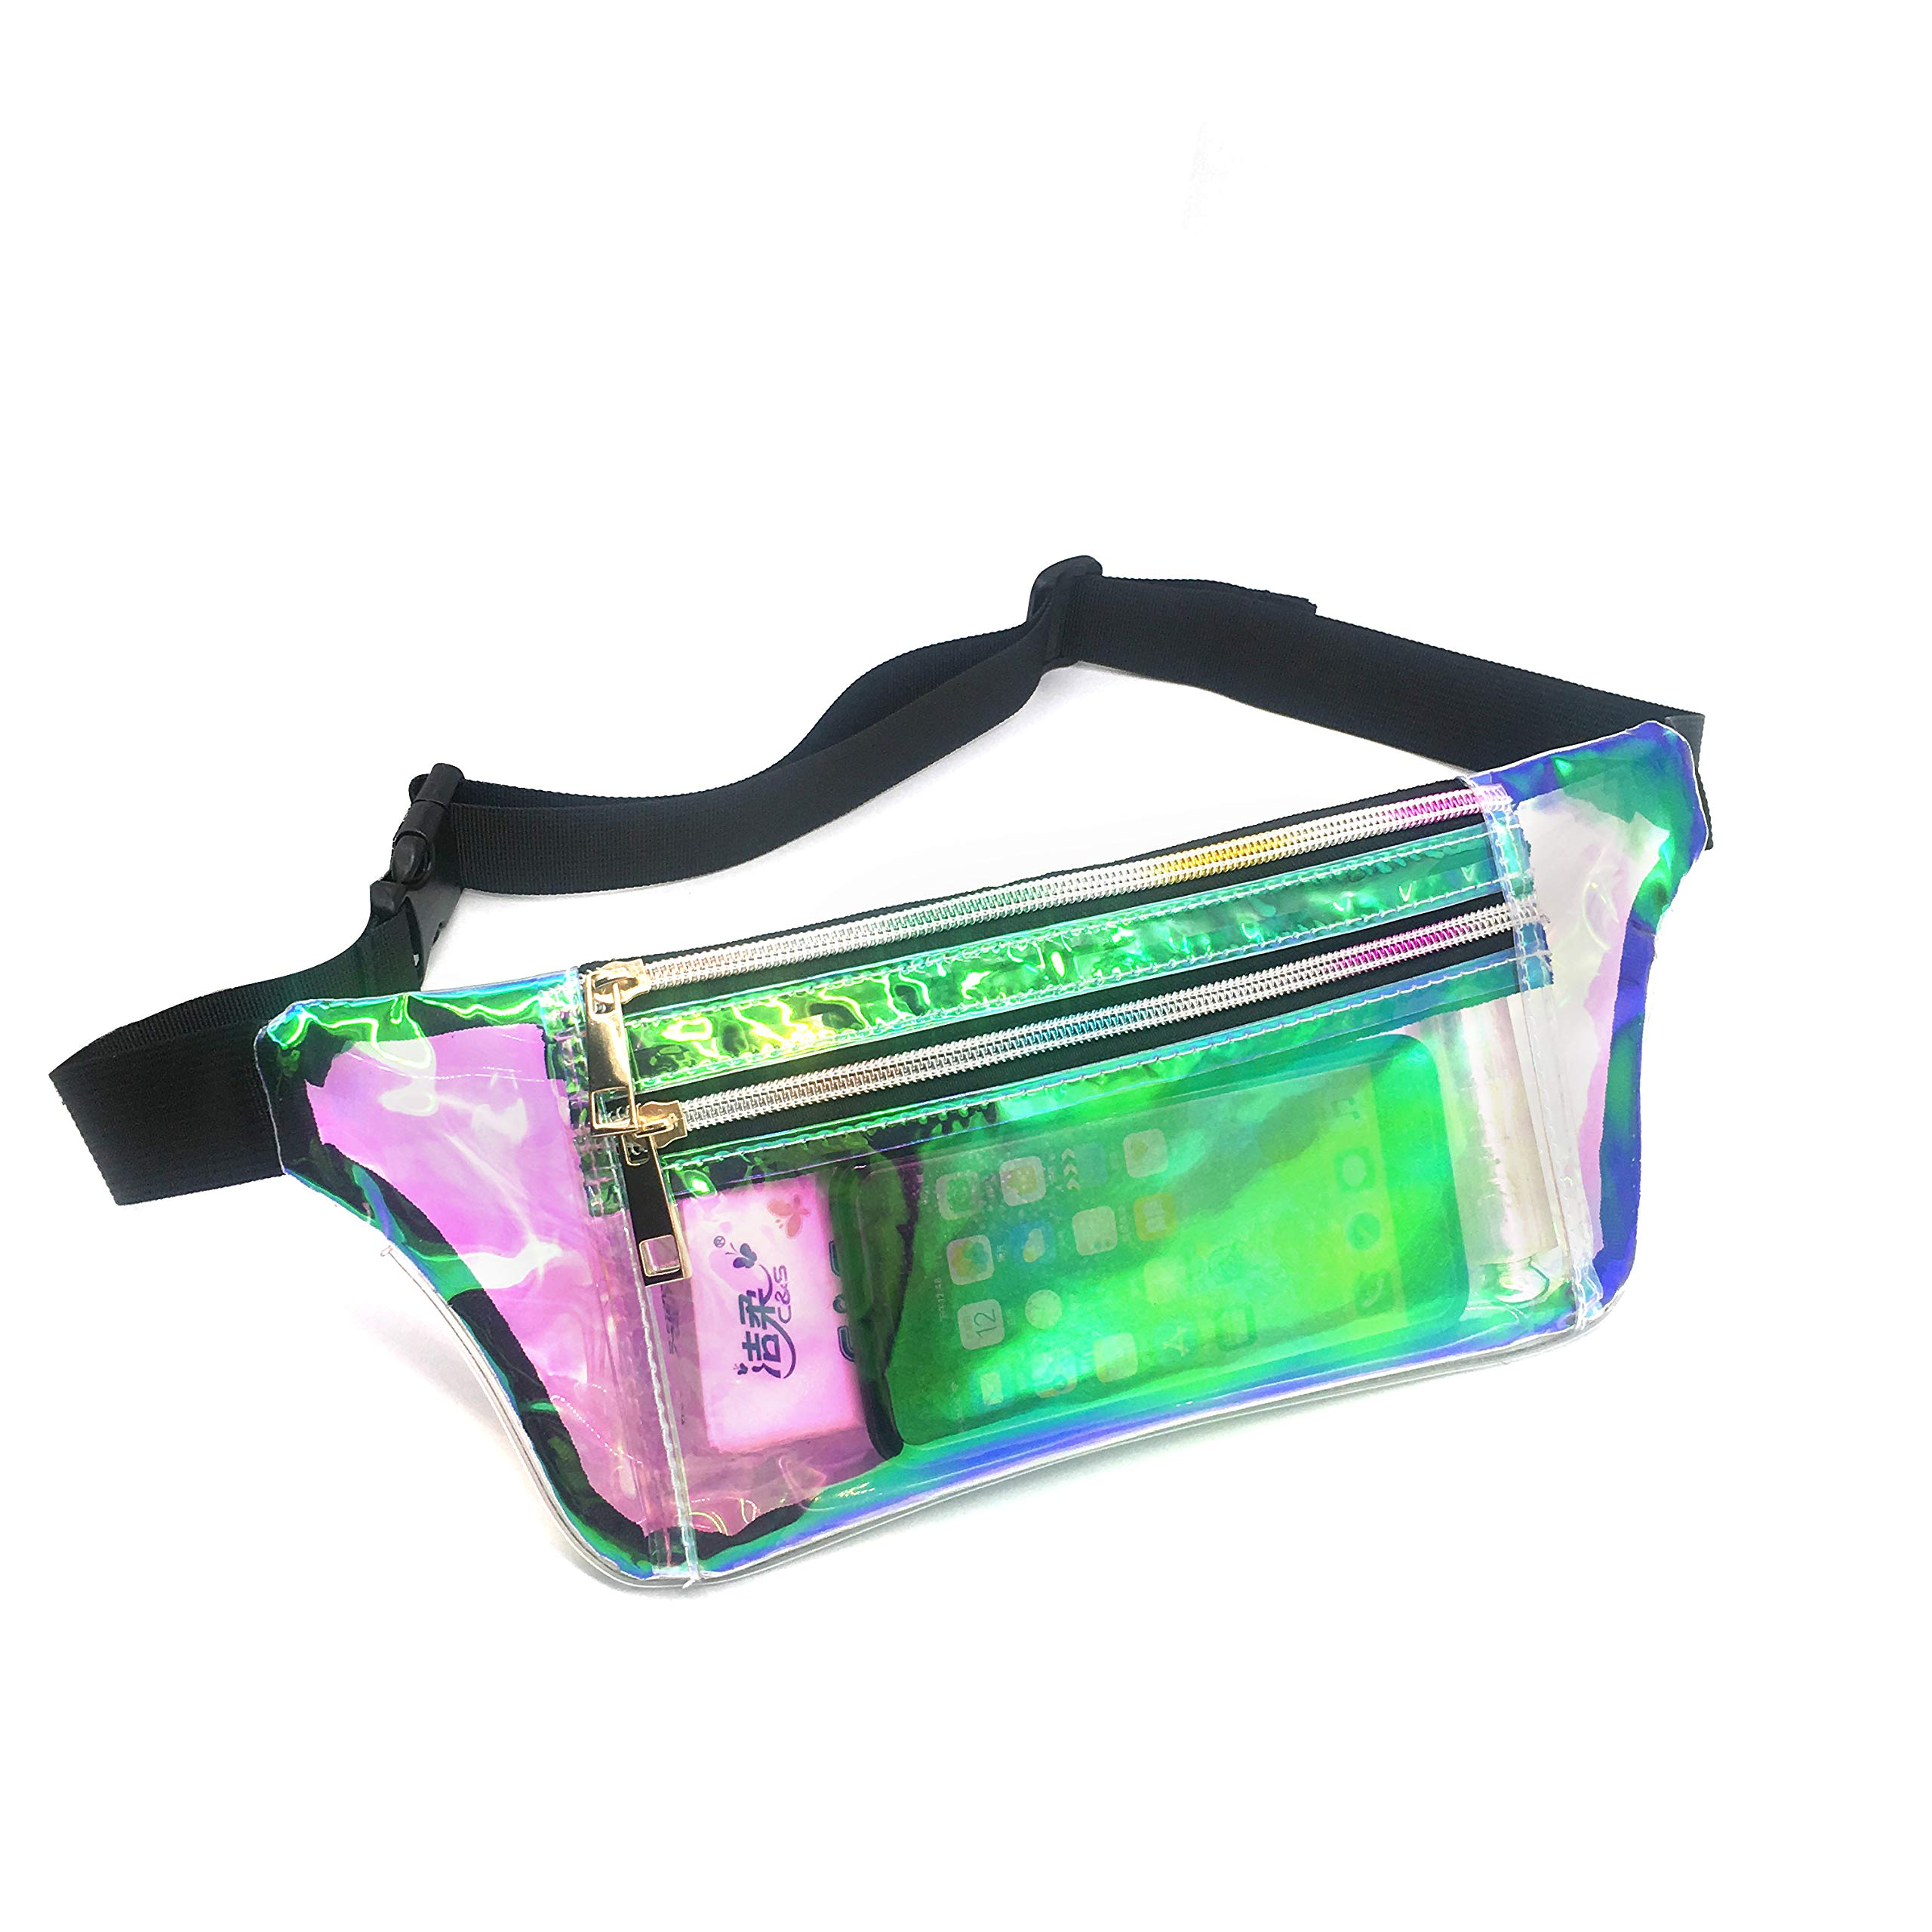 Dolores Holographic Flat Fanny Pack Clear Waist Bags for Women Men Stylish Iridescent Rave Festival Hip Fanny Pack Sport Bag Travel Wallet